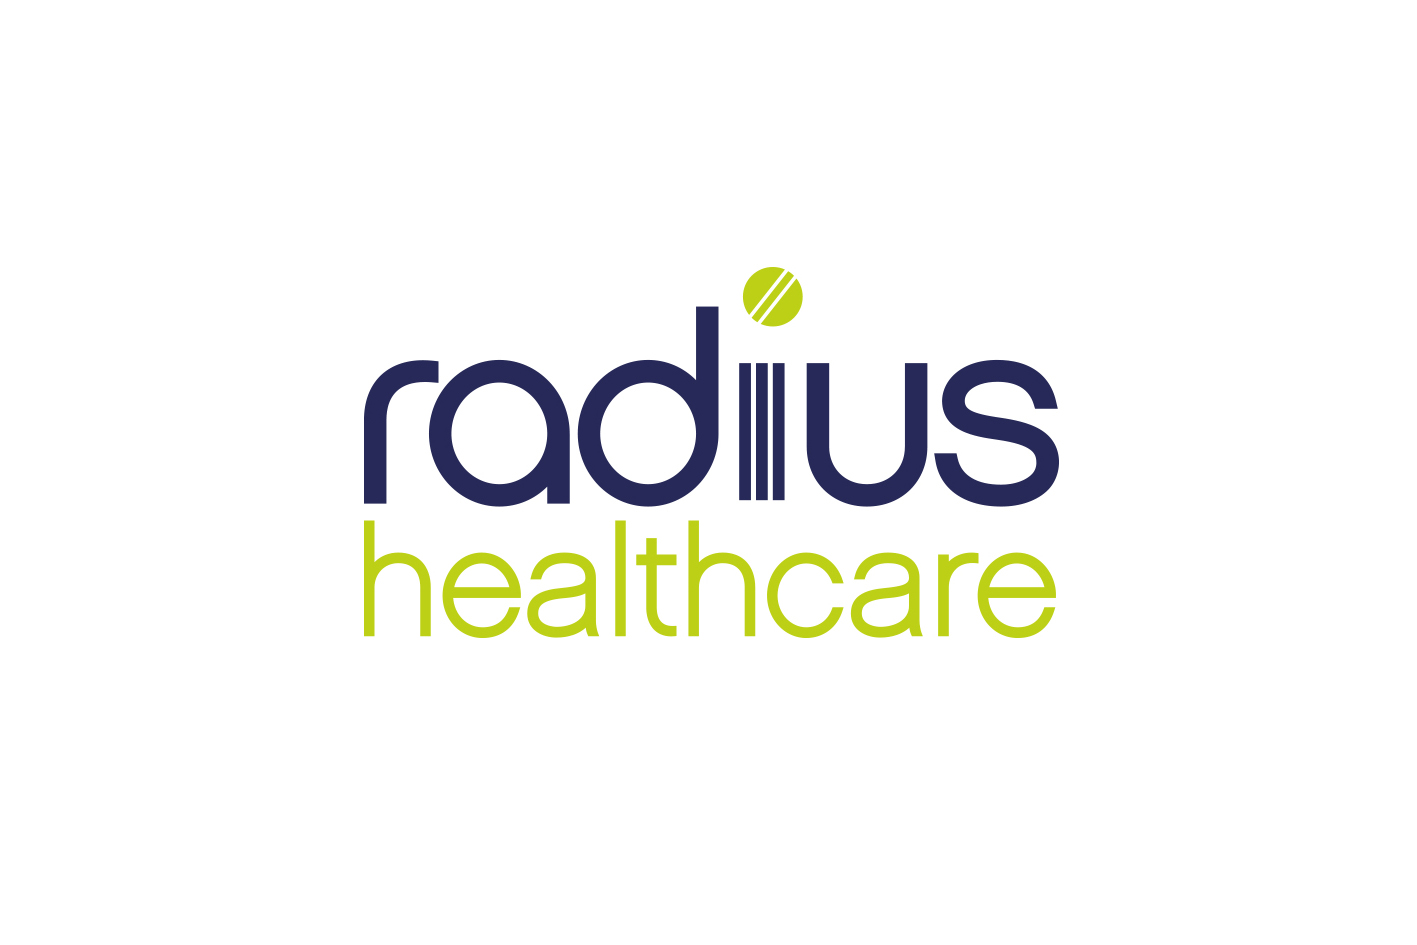 Radius Healthcare  Branding, stationery, promotional items and advertising for physiotherapy and healthcare clinic based at Sussex County Cricket Club.